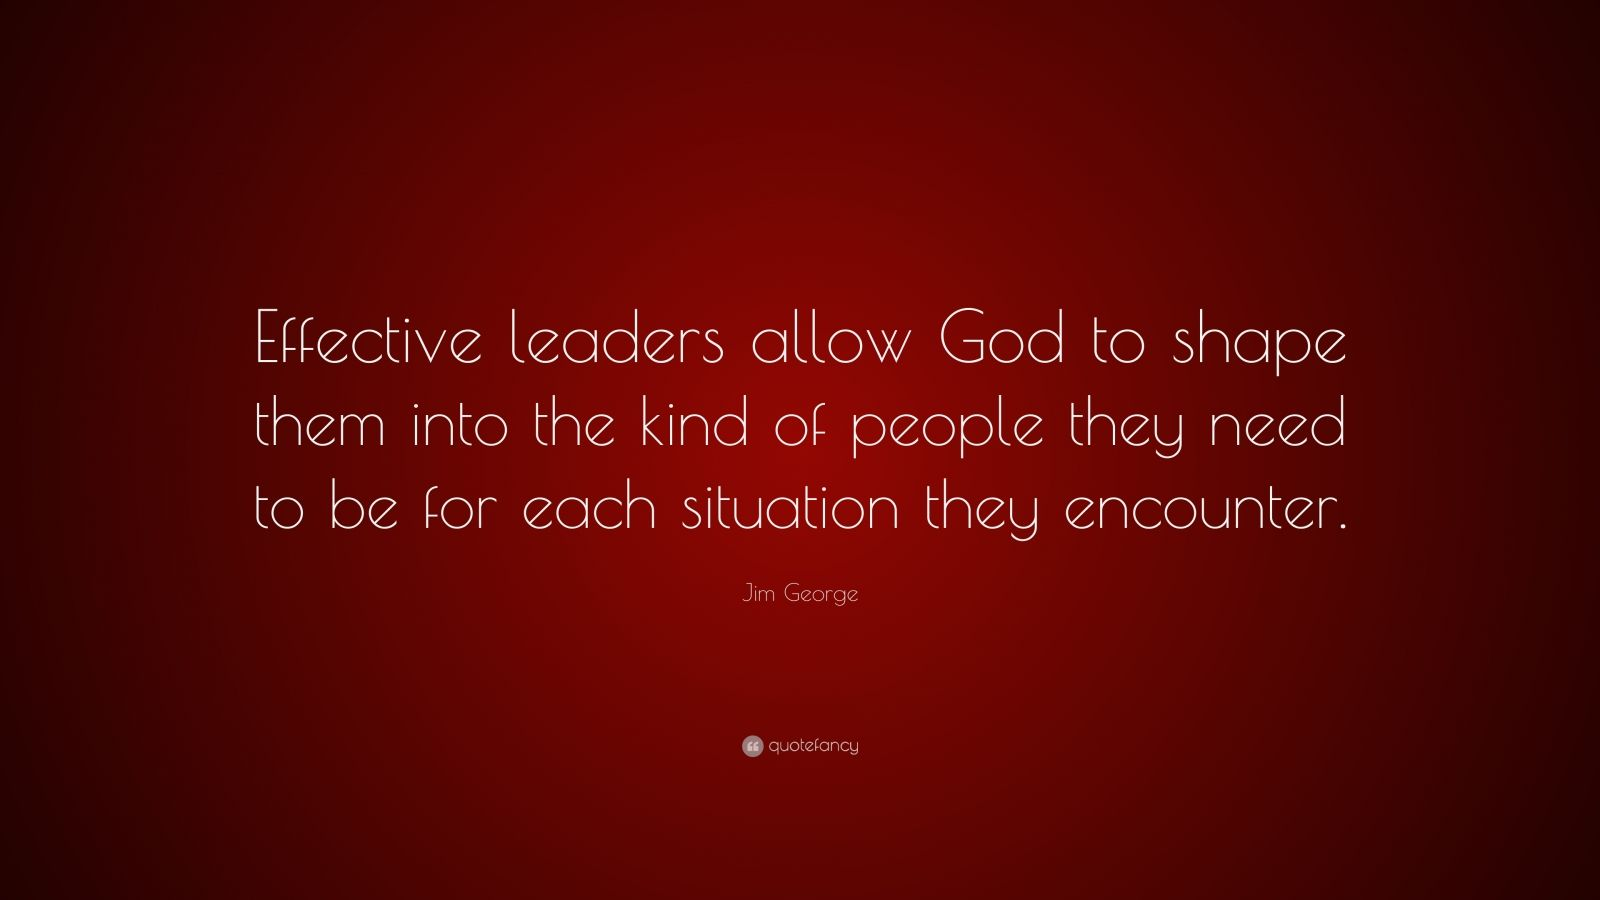 """Jim George Quote: """"Effective leaders allow God to shape them into the kind of people they need to be for each situation they encounter."""""""